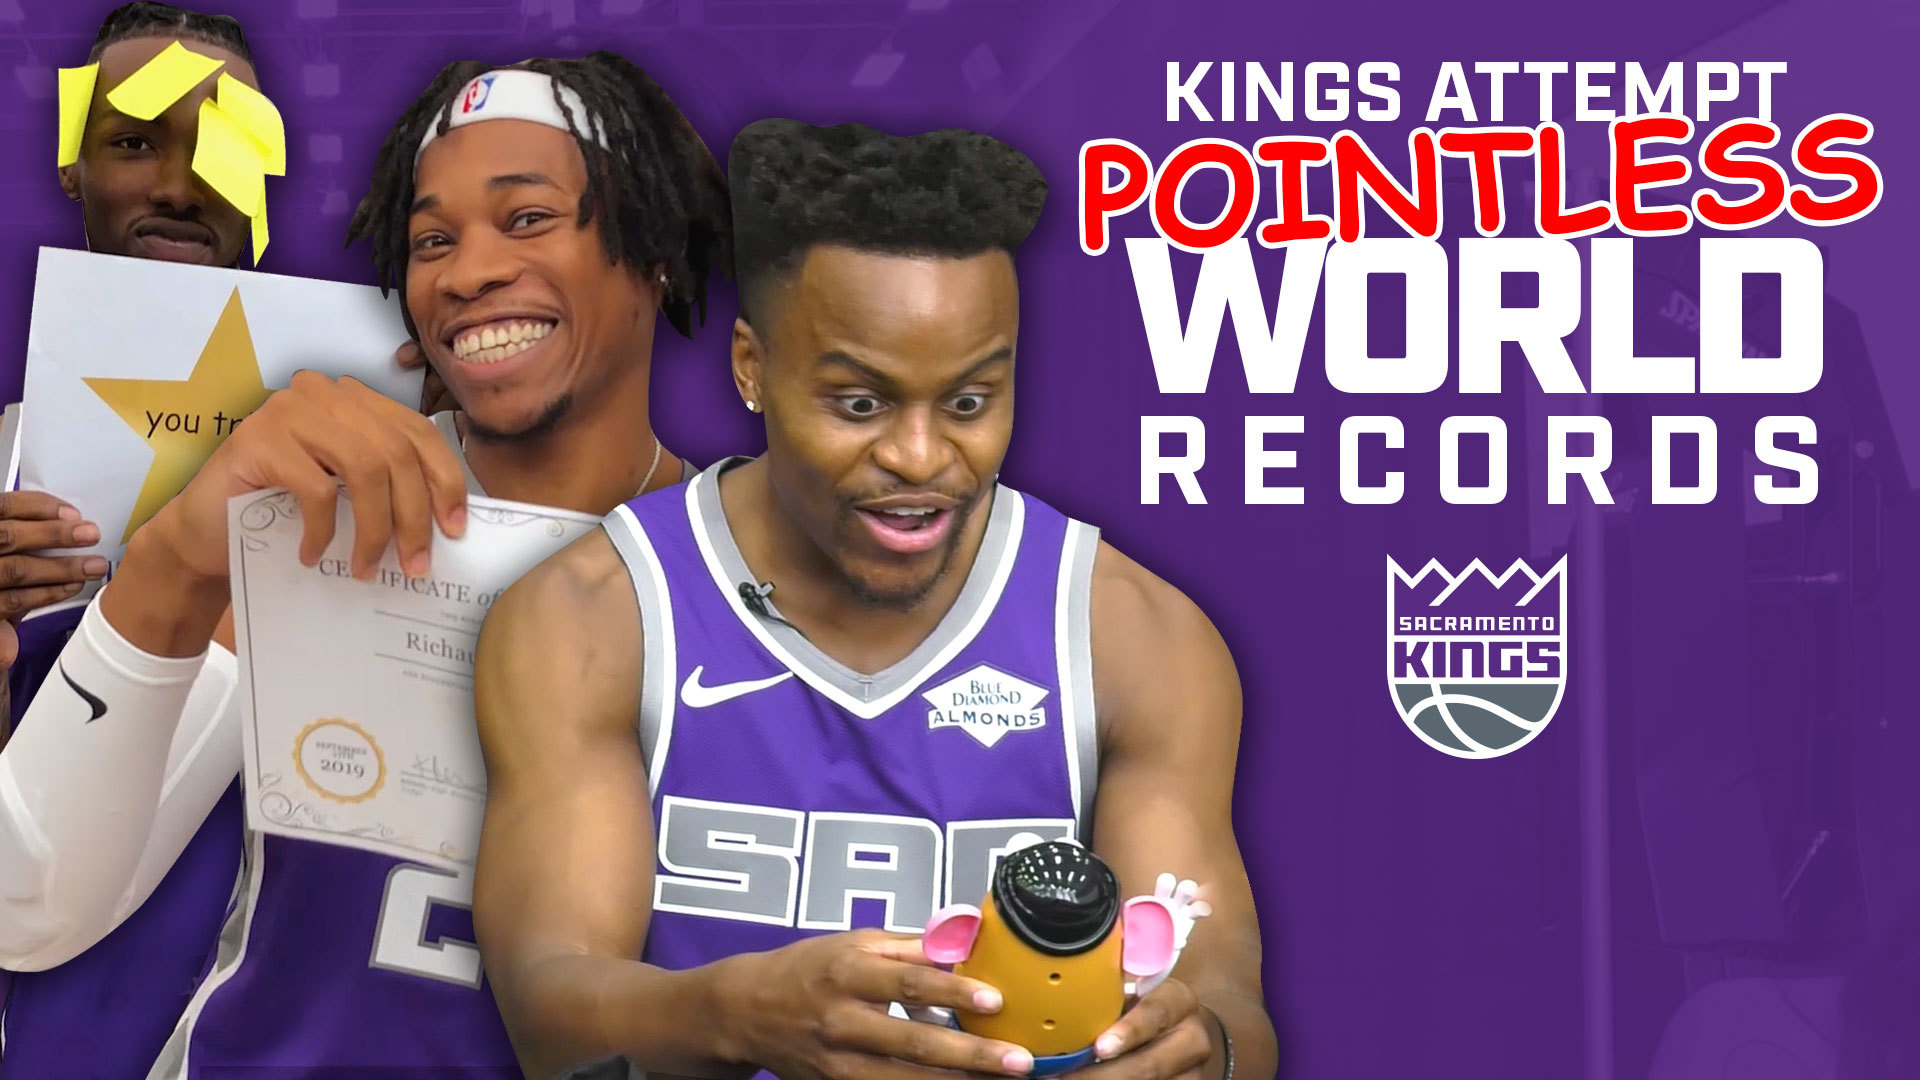 Kings Try to Break POINTLESS World Records!